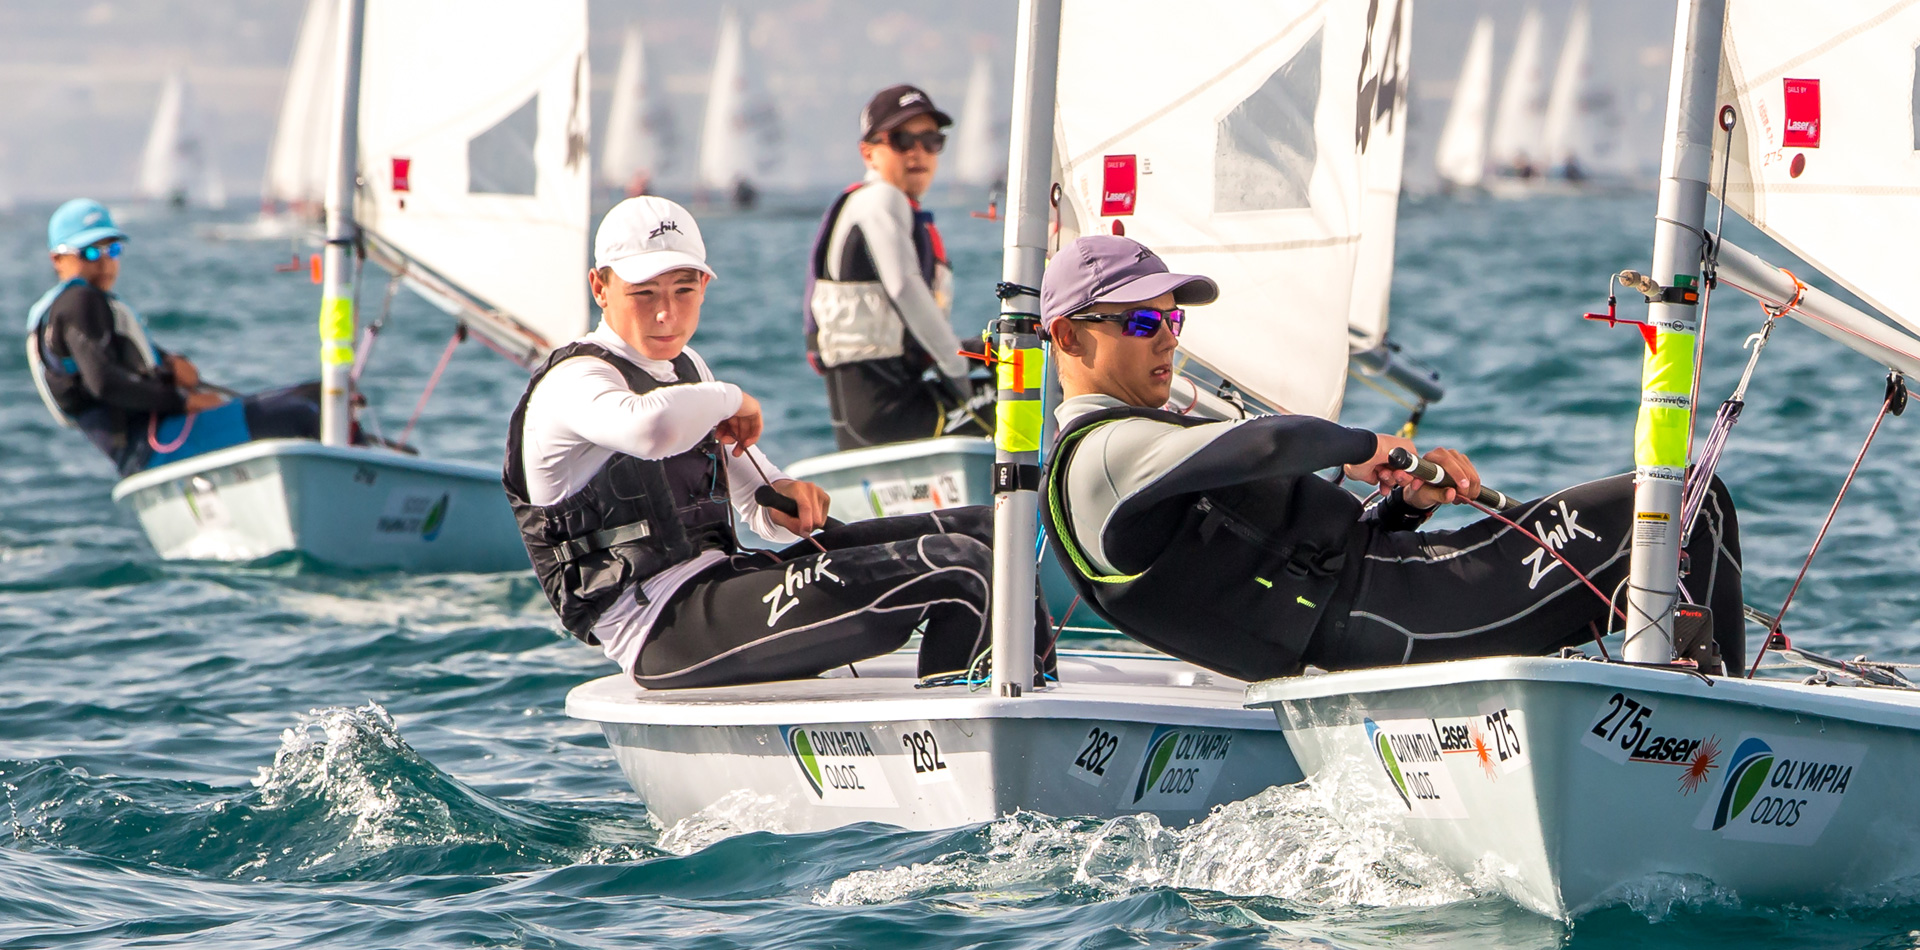 2019 Laser 4.7 Youth Europeans in Hyeres